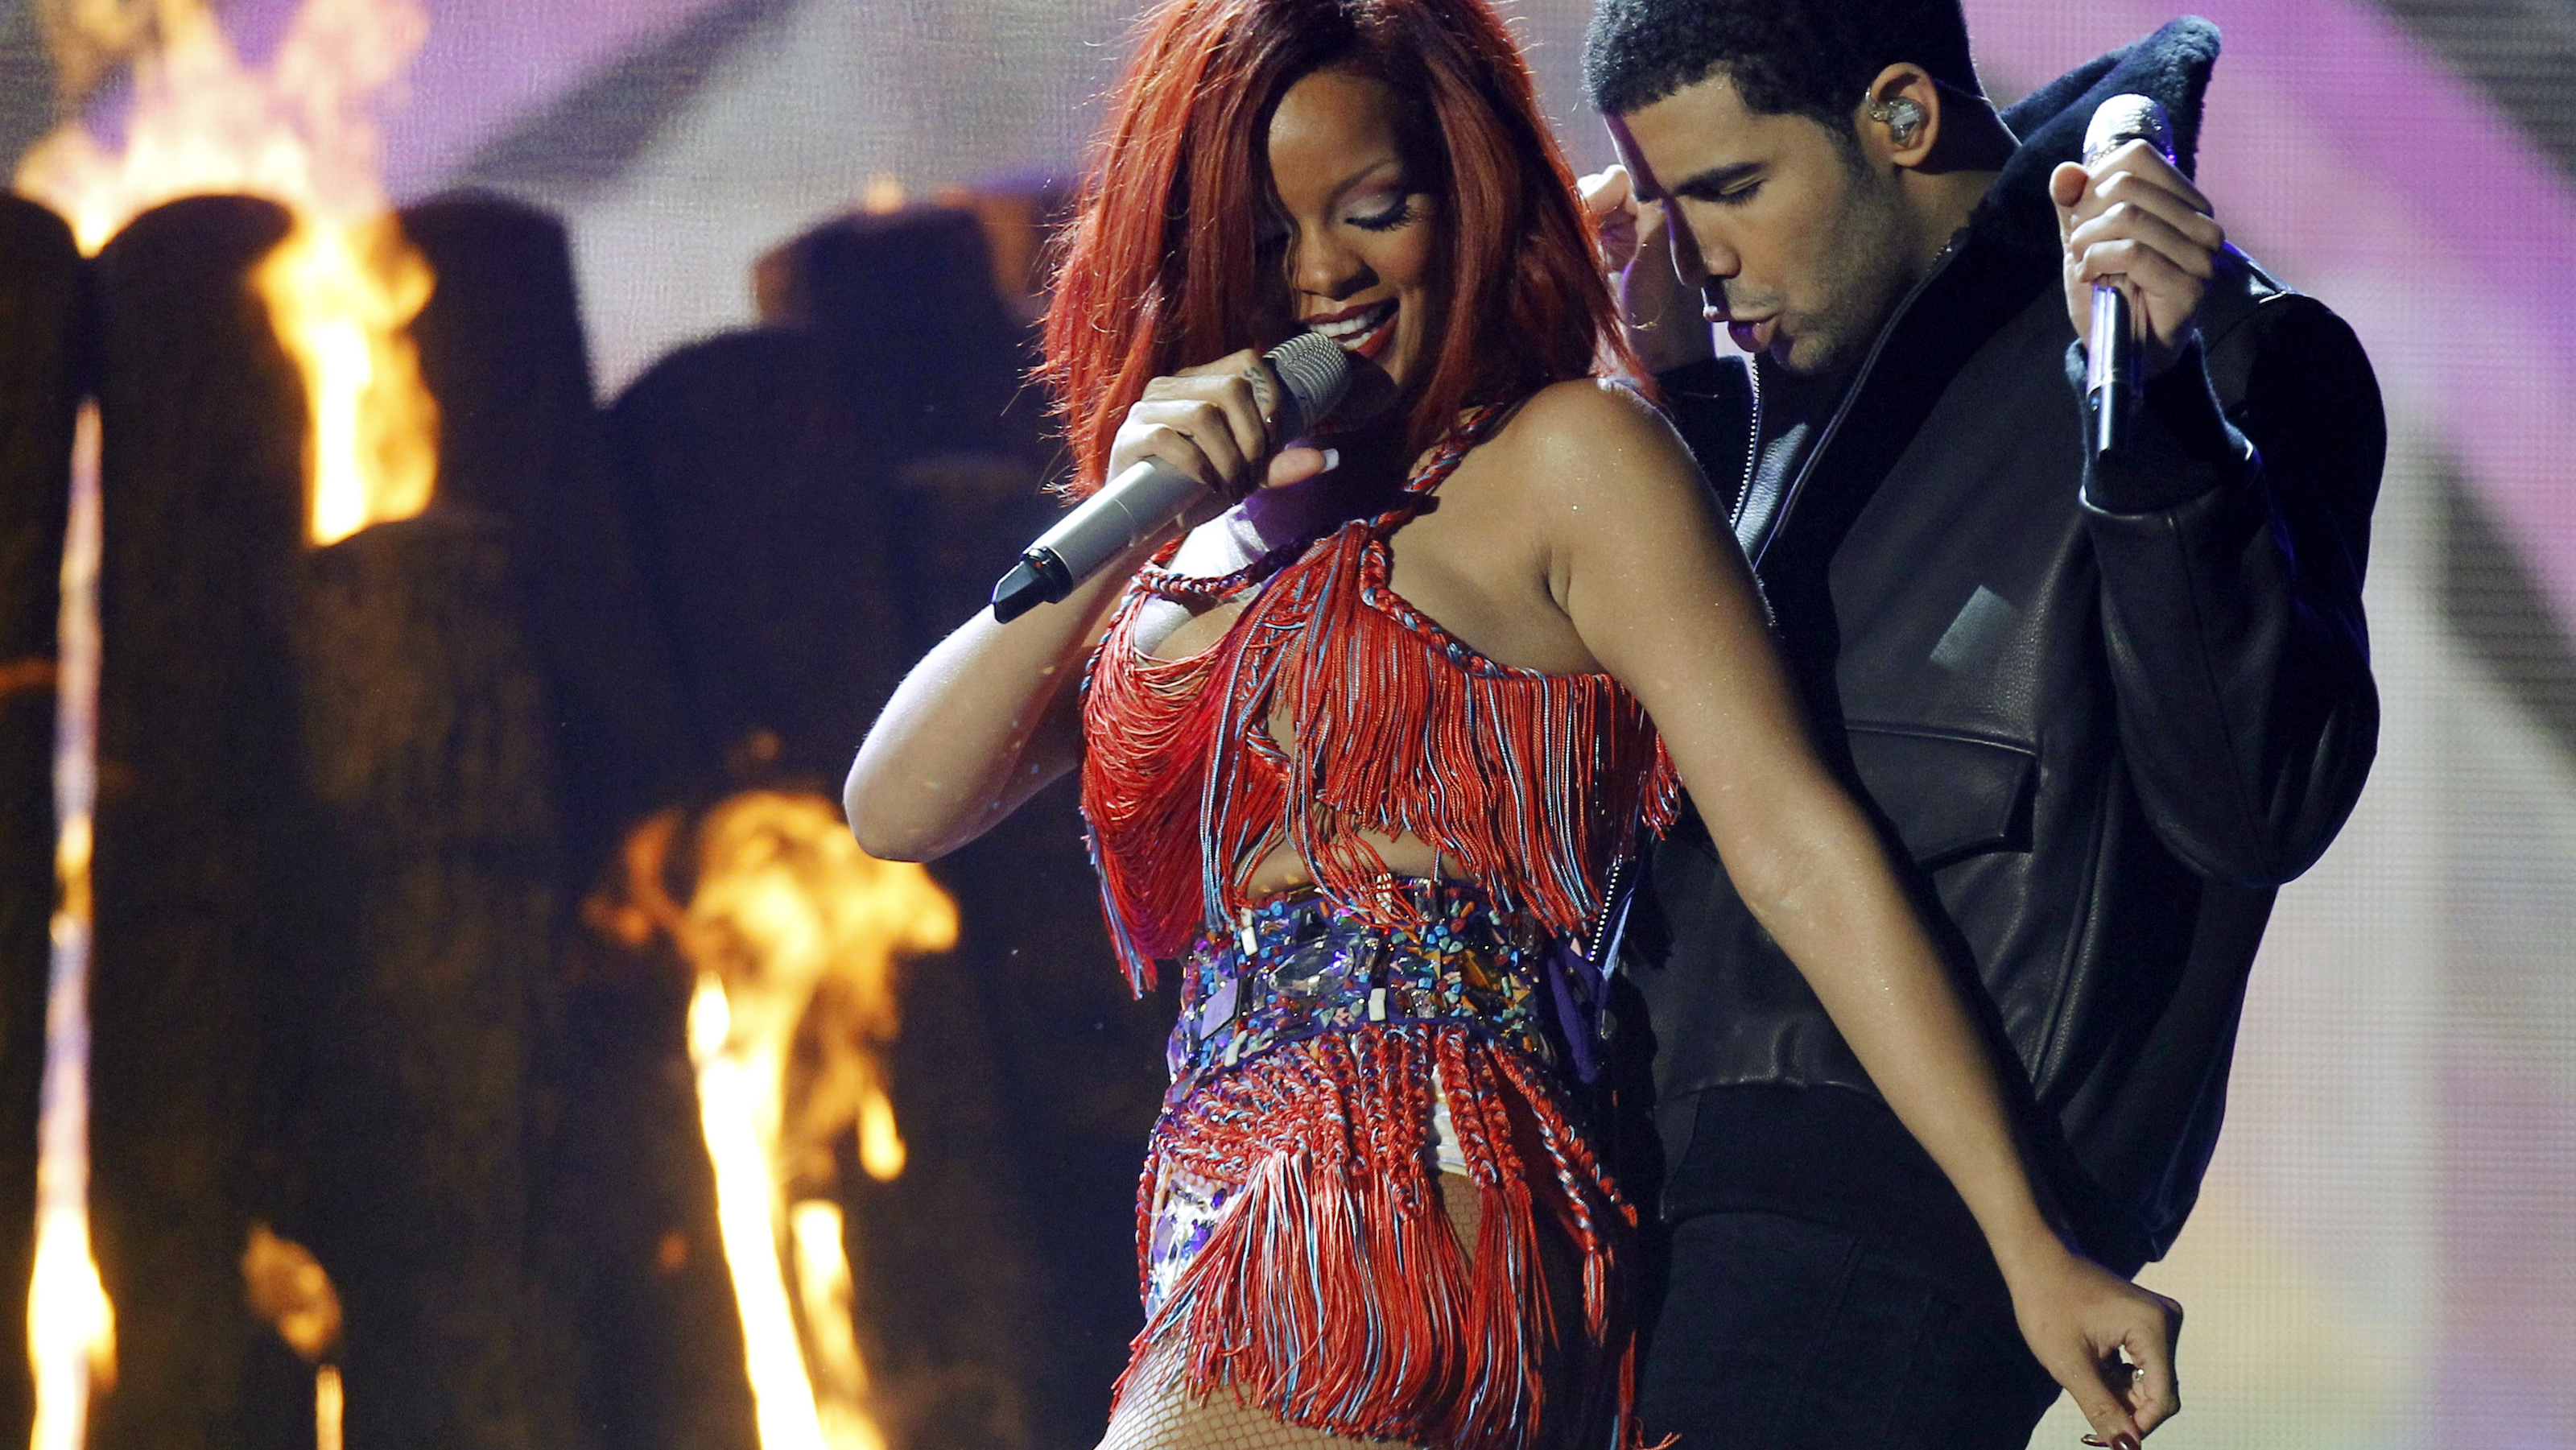 Drake and Rihanna perform 'What's My Name' at the 53rd annual Grammy Awards in Los Angeles, California February 13, 2011.    REUTERS/Lucy Nicholson (UNITED STATES - Tags: ENTERTAINMENT) (GRAMMYS-SHOW) - RTR2IKKY